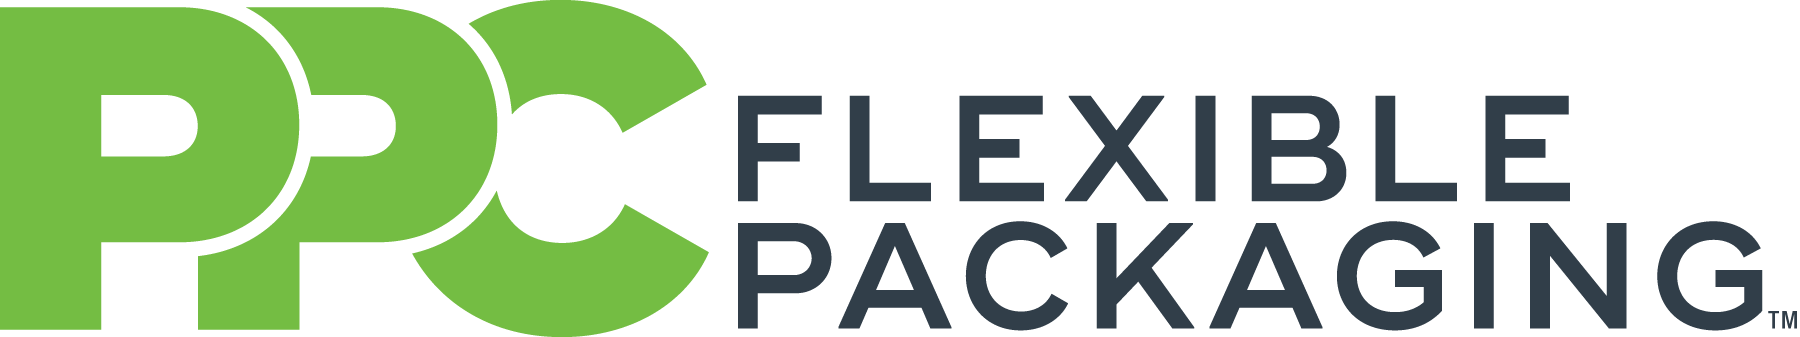 PPC Flexible Packaging announces acquisition of HFM Packaging